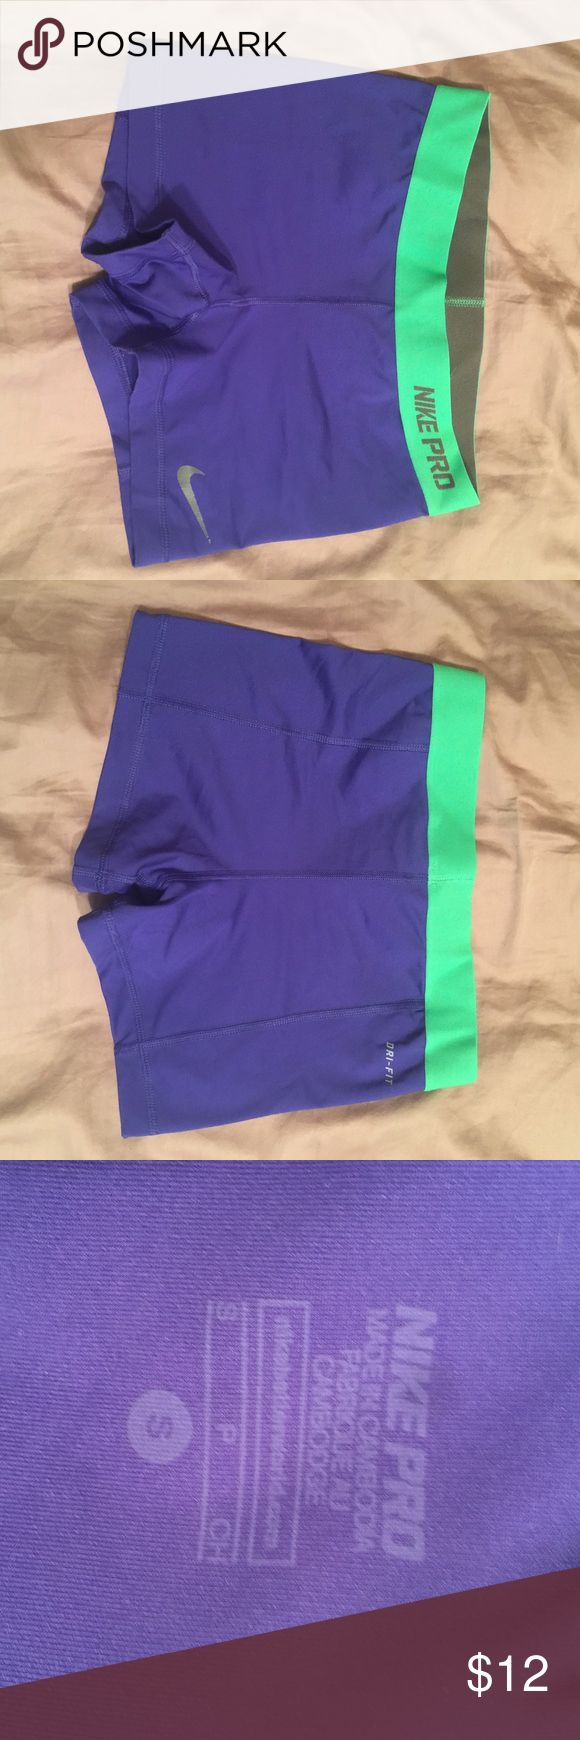 Nike Compression Shorts small Nike bright purple/blue with bright green band. No stains, tears or imperfections. Size small Nike Shorts